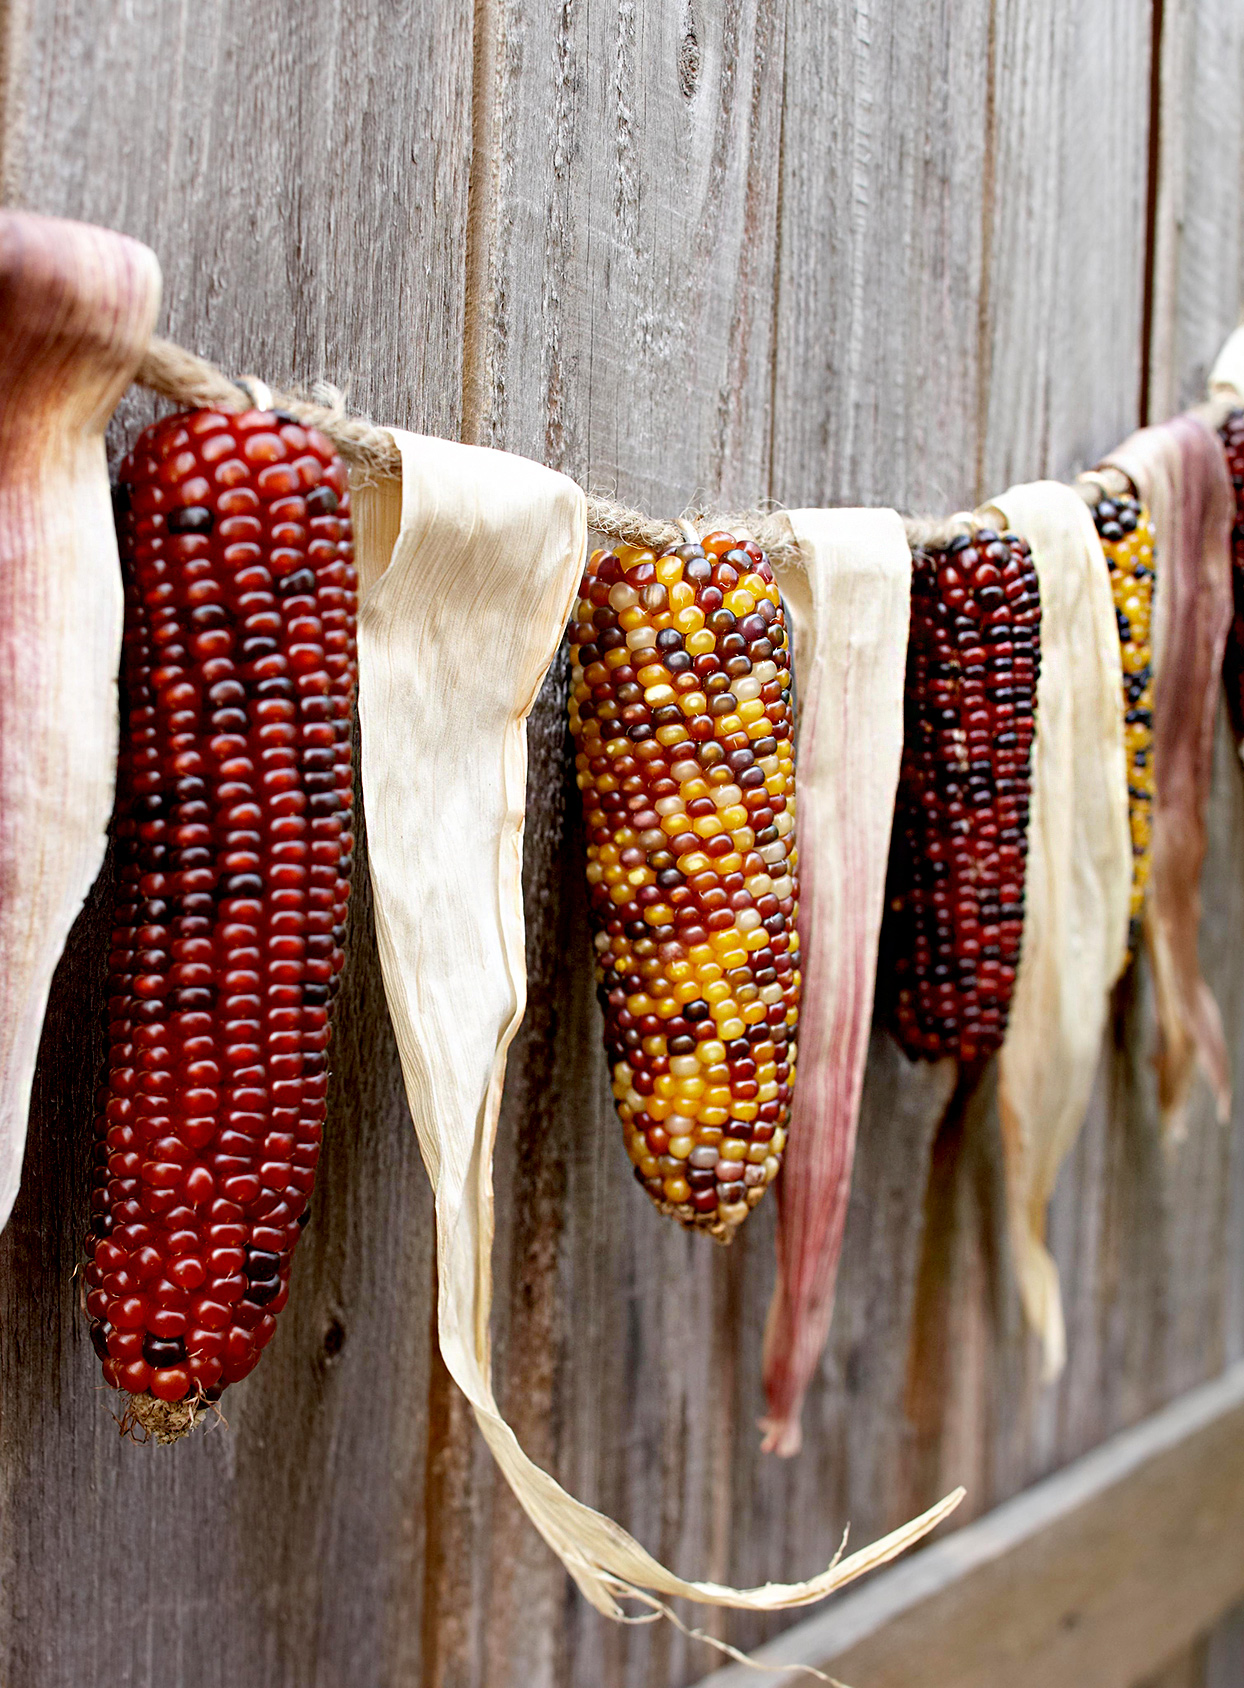 Corn and husks hanging from rope